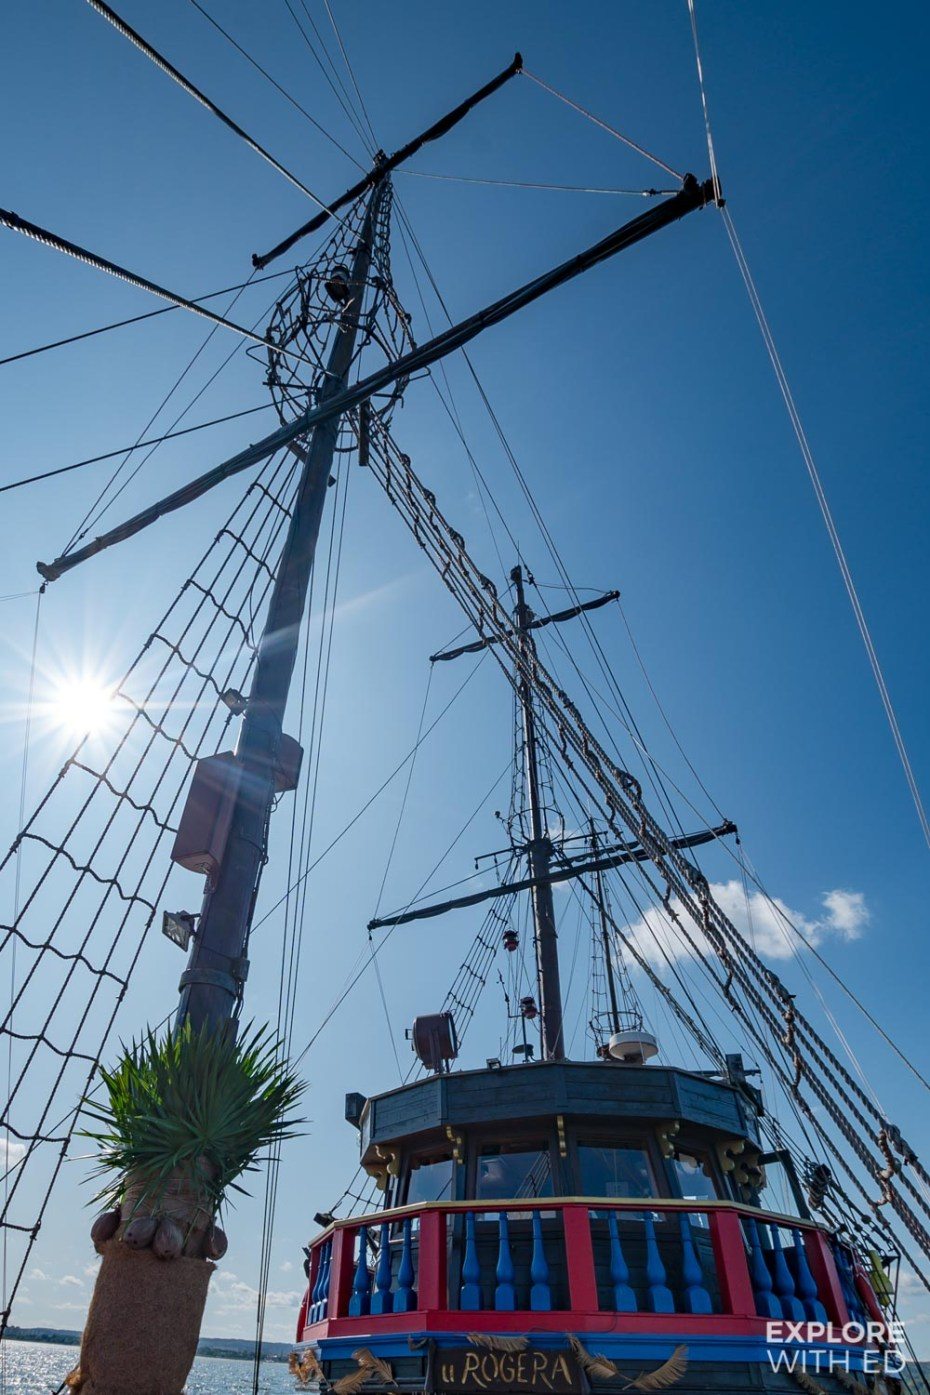 Onboard the Sopot Pirate Ship